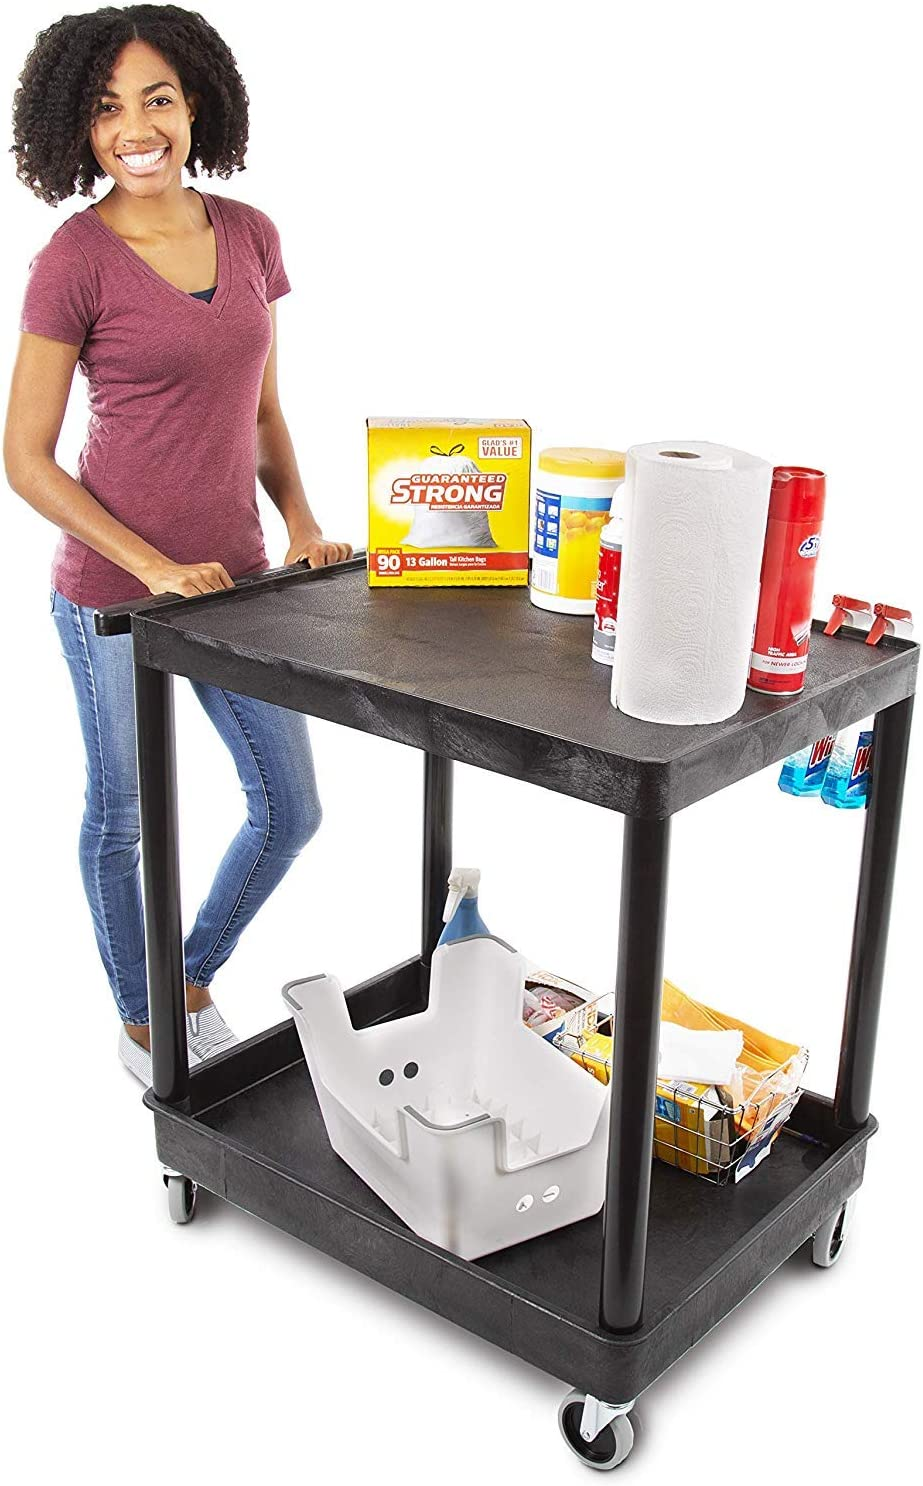 Original Tubstr Flat Top Utility Cart Service Cart Large, 32 x 24 Inches Heavy Duty, Supports up to 400 lbs – Lipped Top Shelf and Deep Tub Bottom Shelf Great for Warehouse, Cleaning and More